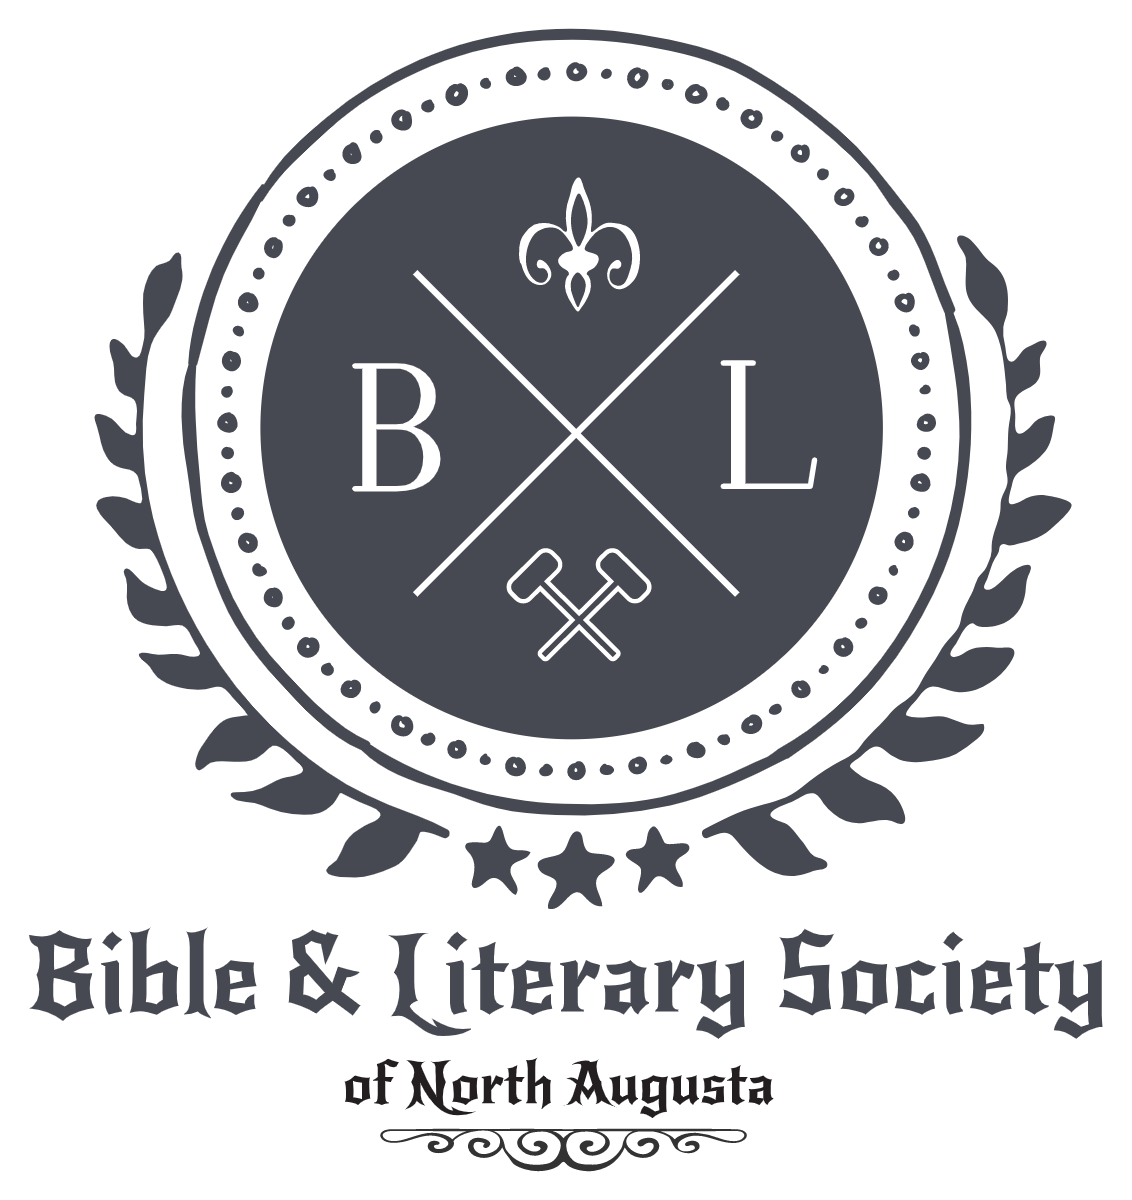 Bible & Literary Society of North Augusta